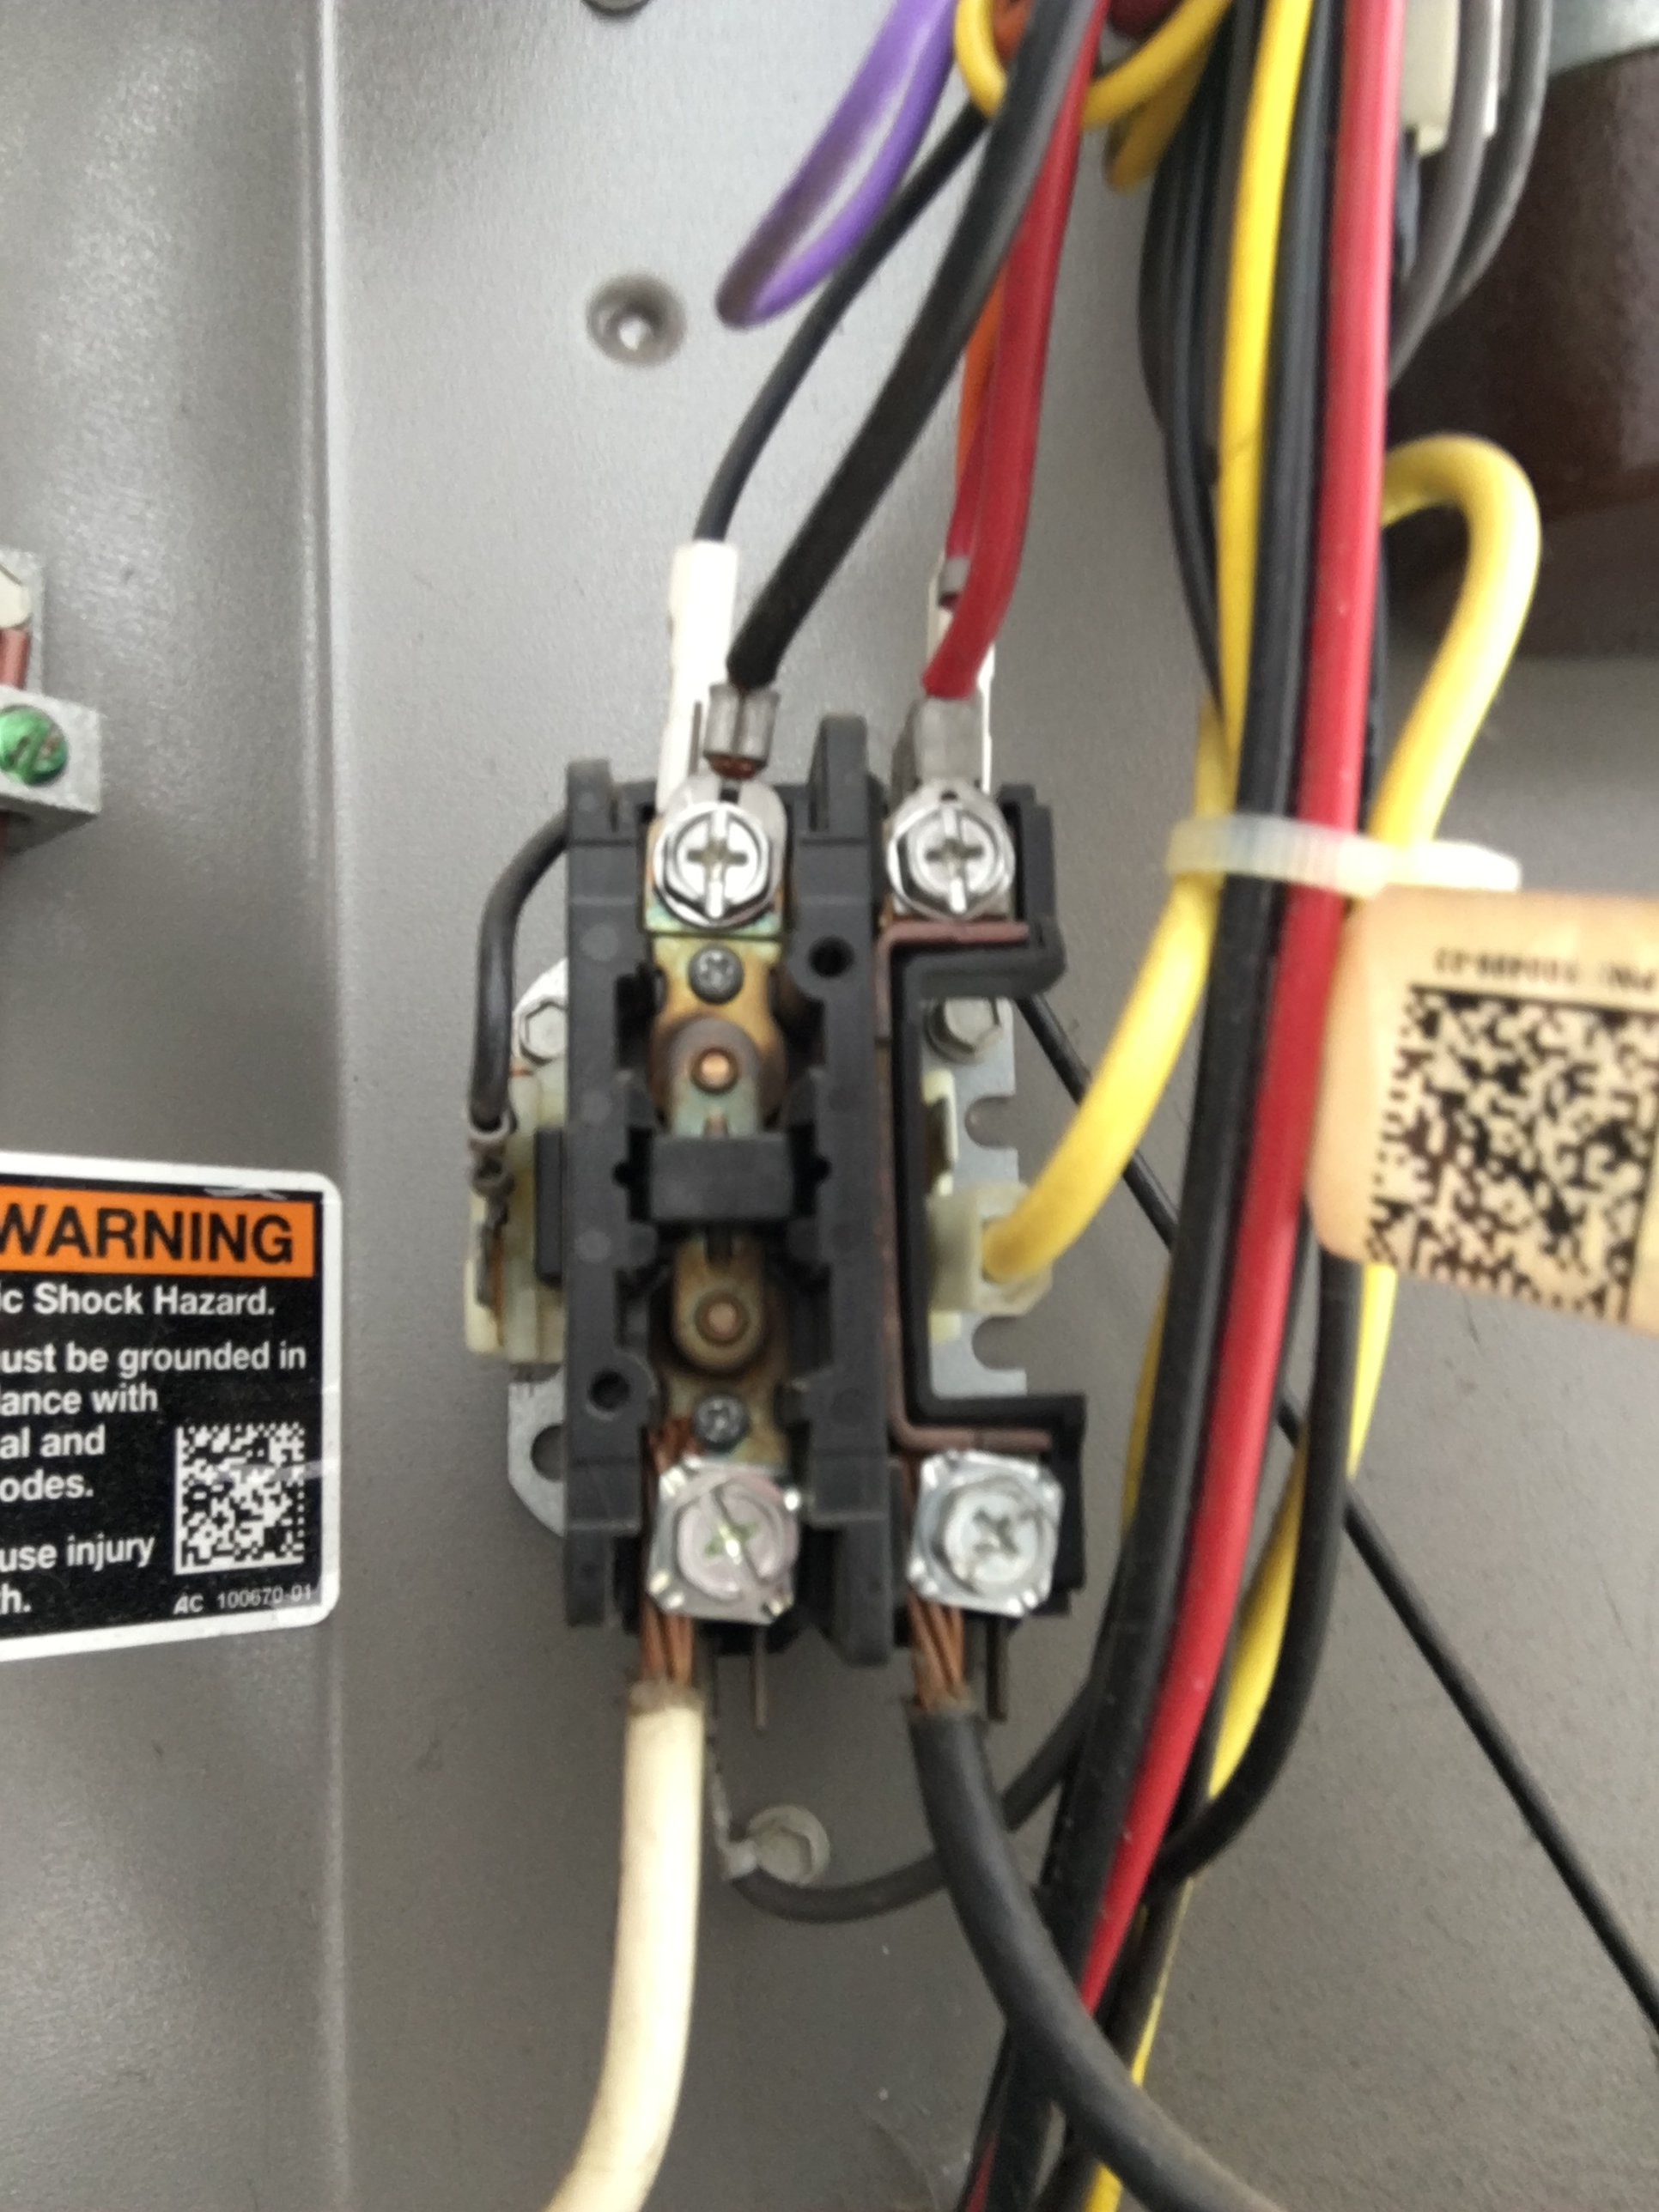 My HZ311 Honeywell unit had a zone 3 red light  What does